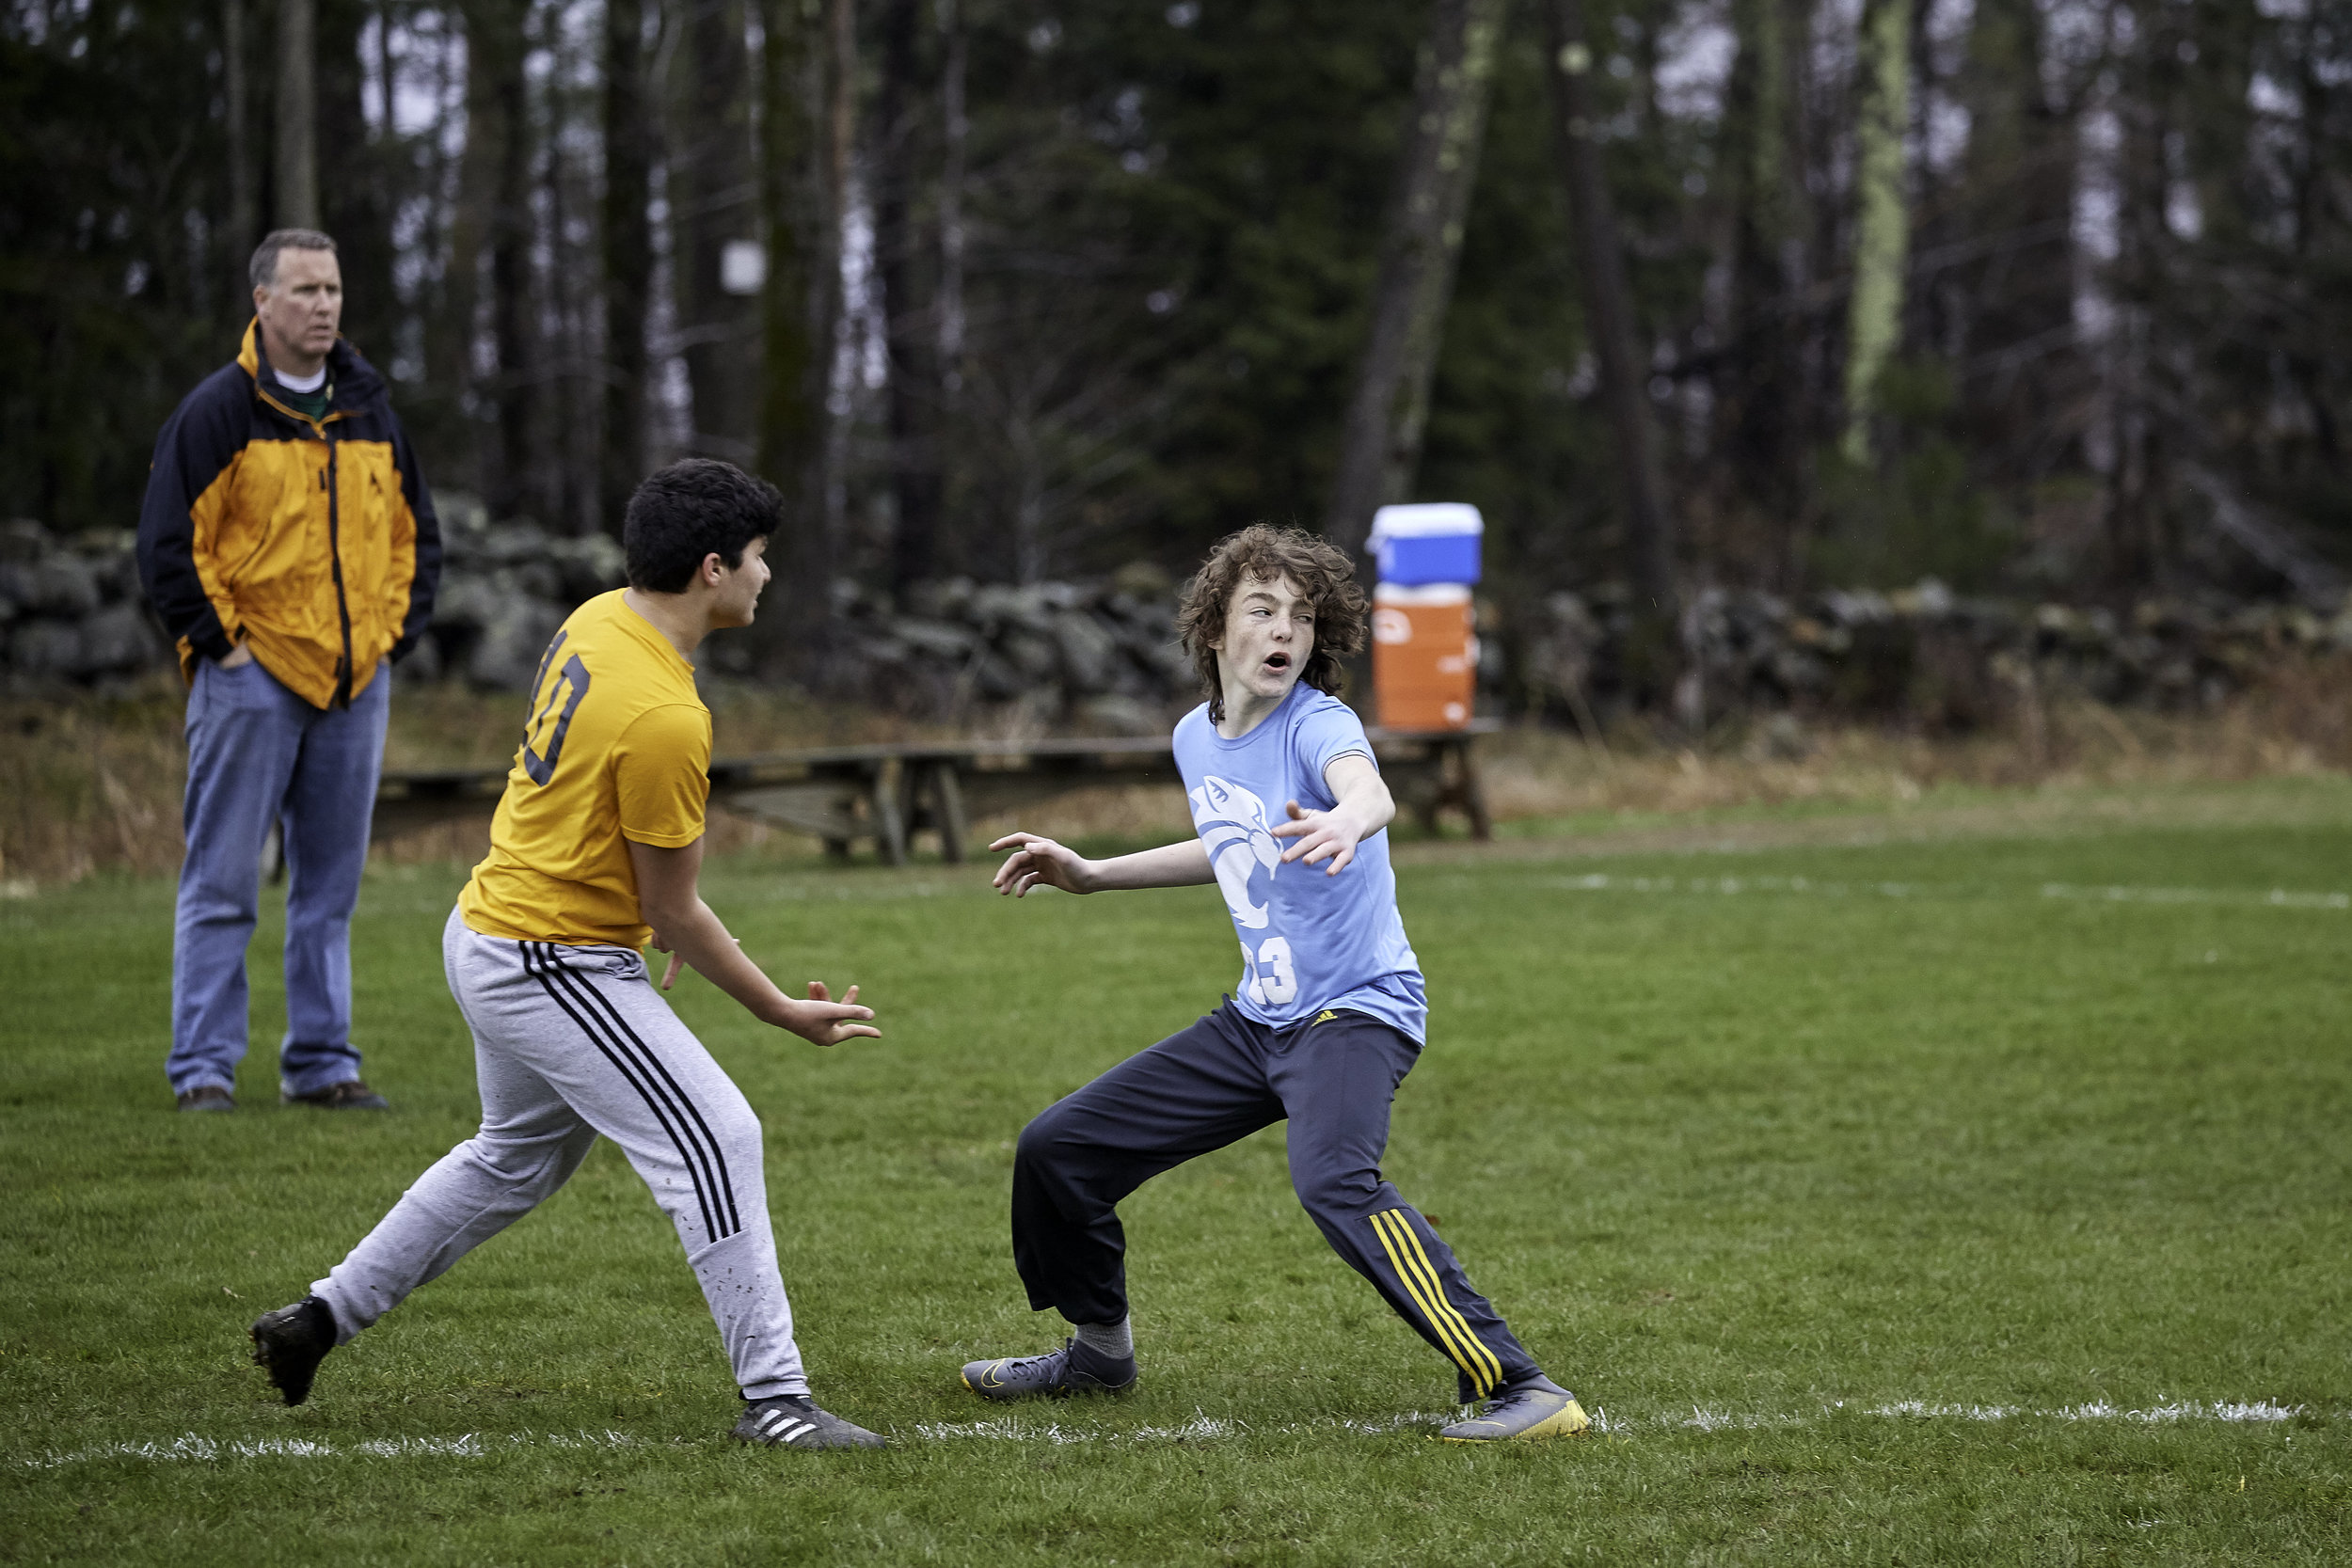 Ultimate Frisbee vs. Eagle Hill School - May 3, 2019 - 188406.jpg